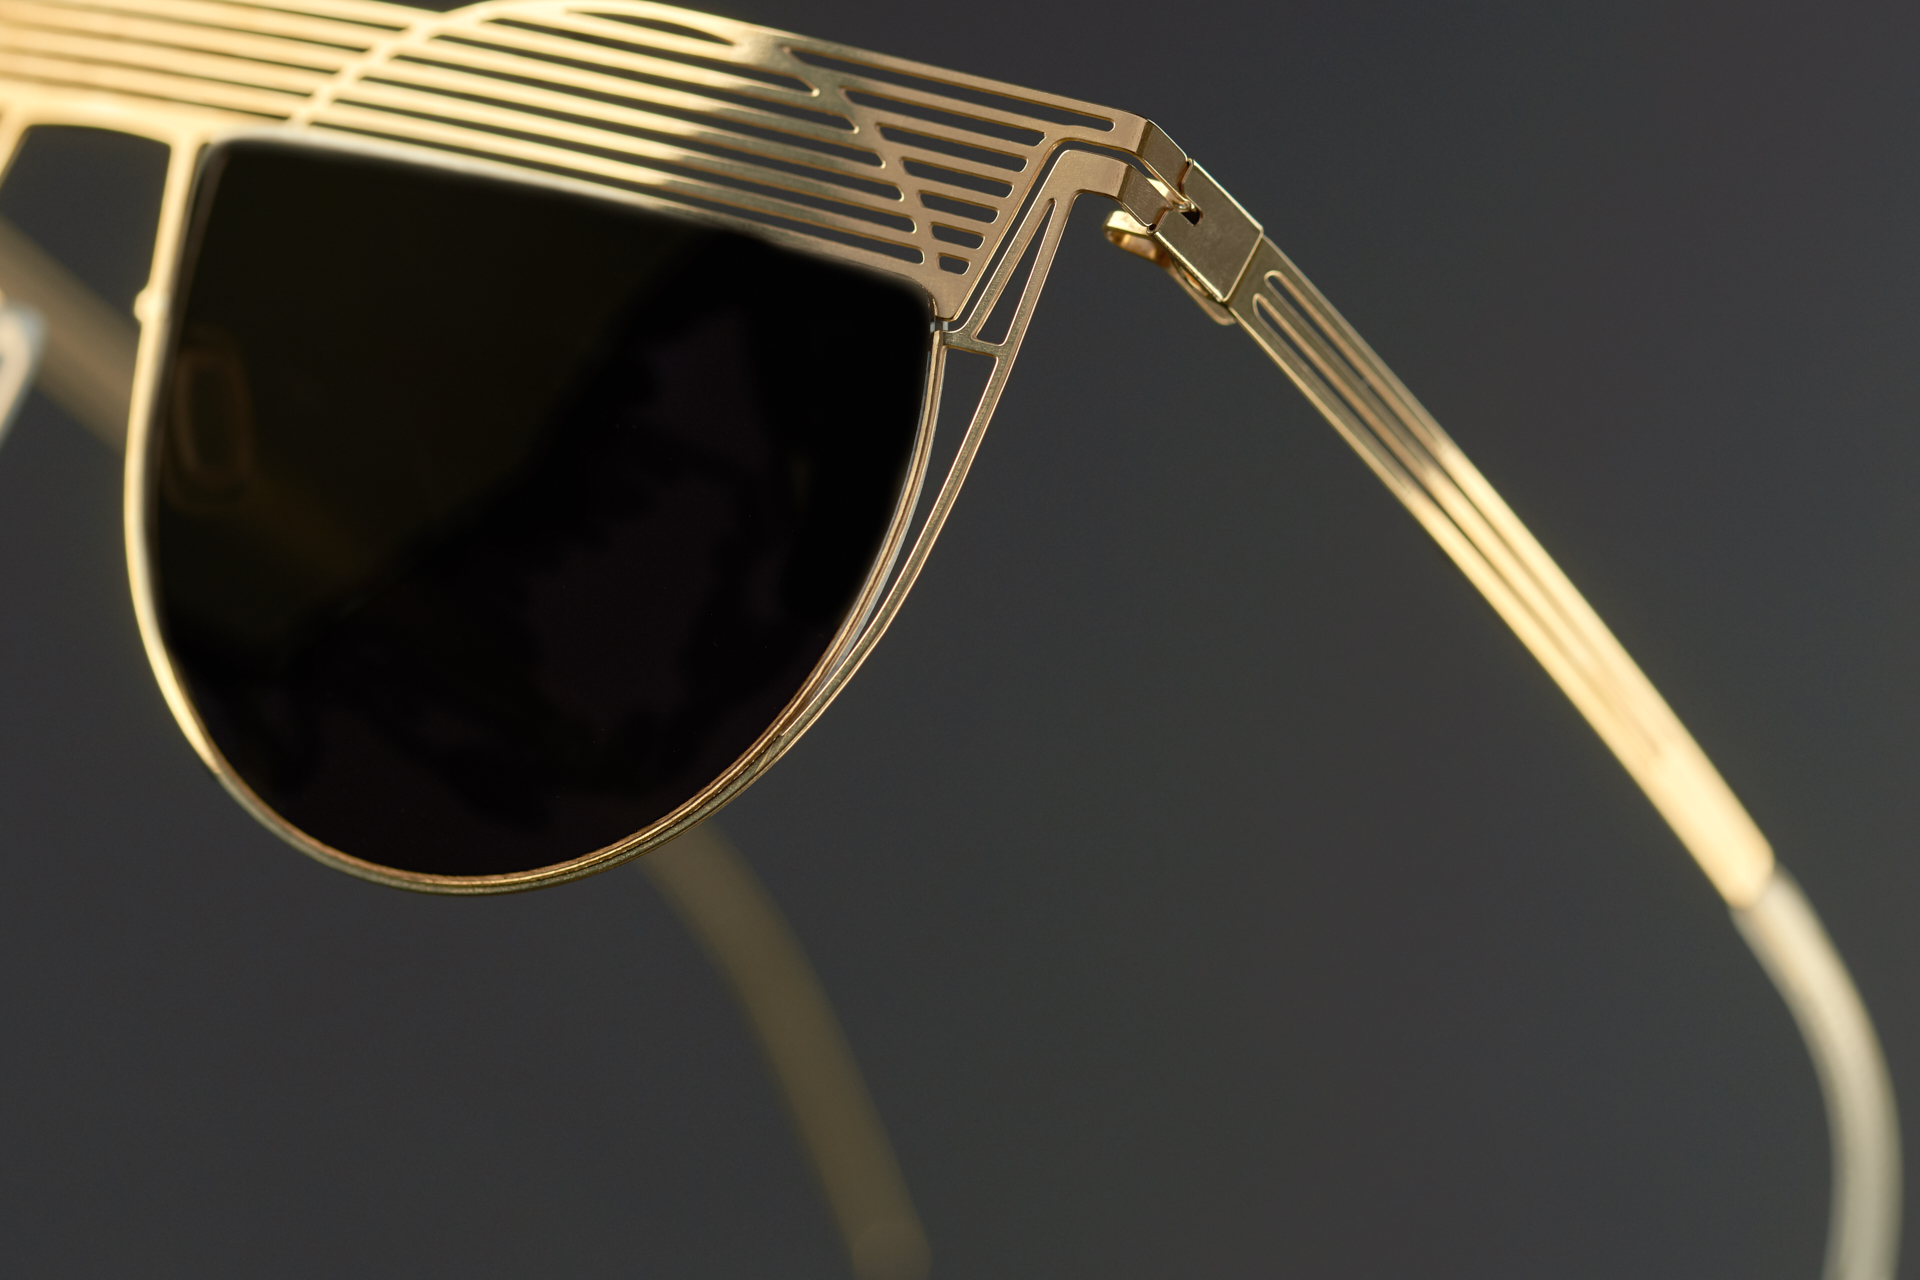 KEEPING THE TENSION AND STRUCTUREDDesigned to beflexible and light - Our frames look very light, thanks to the thin wires that are hidden in the profile of the lens.Inside, you can see the cables that maintain tension, while the incisions increase the lightness of our glasses.